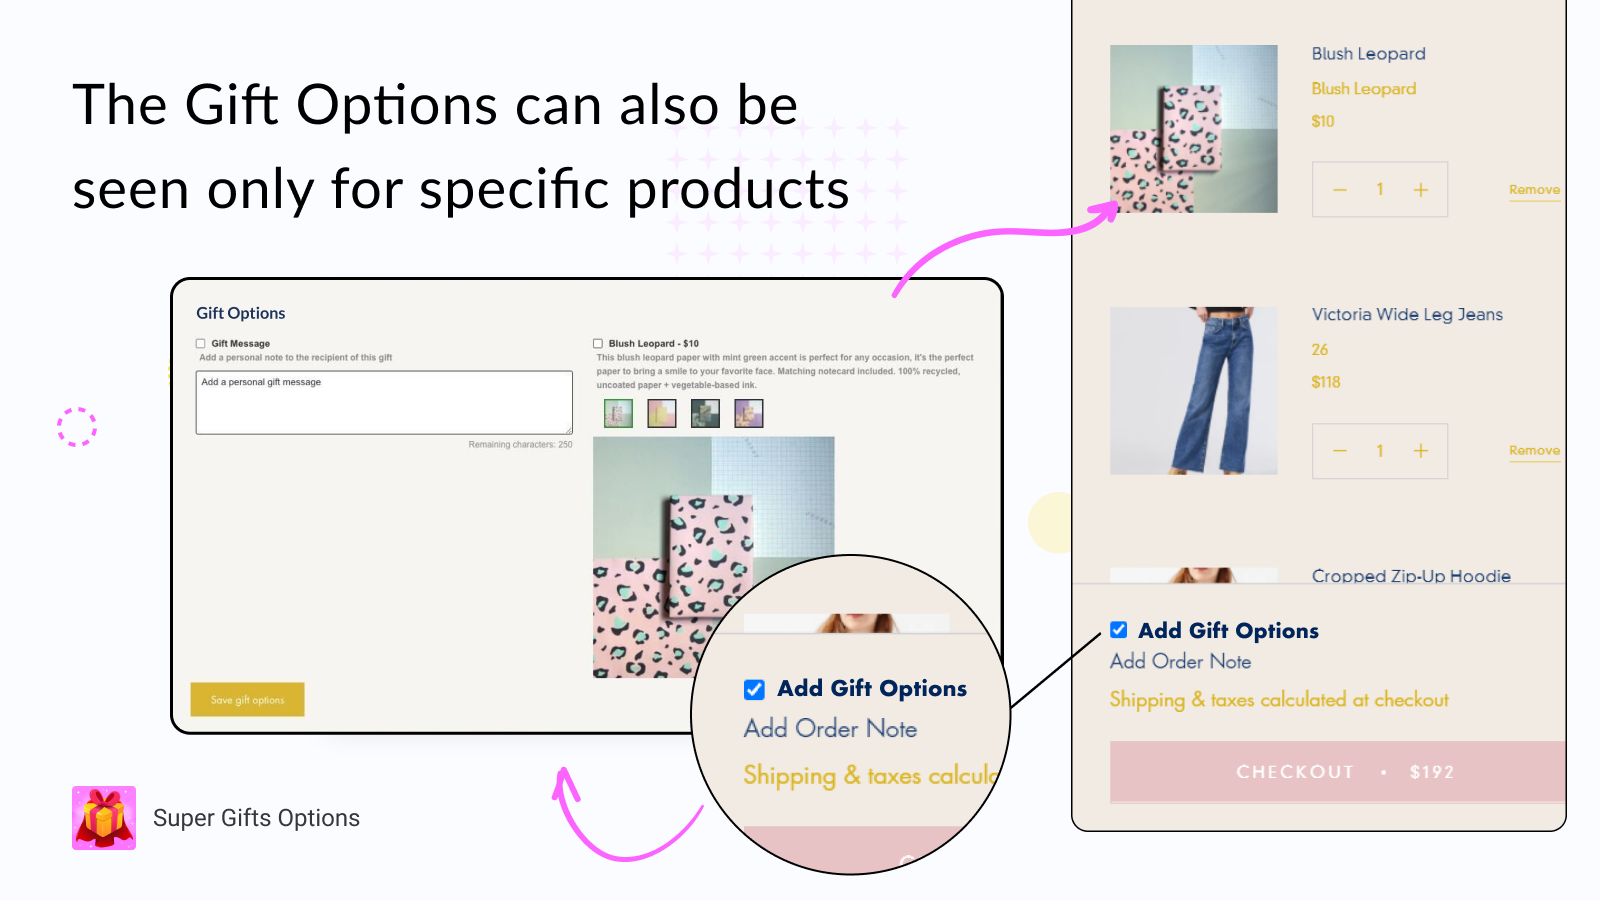 Show the gift options only for selected specific products